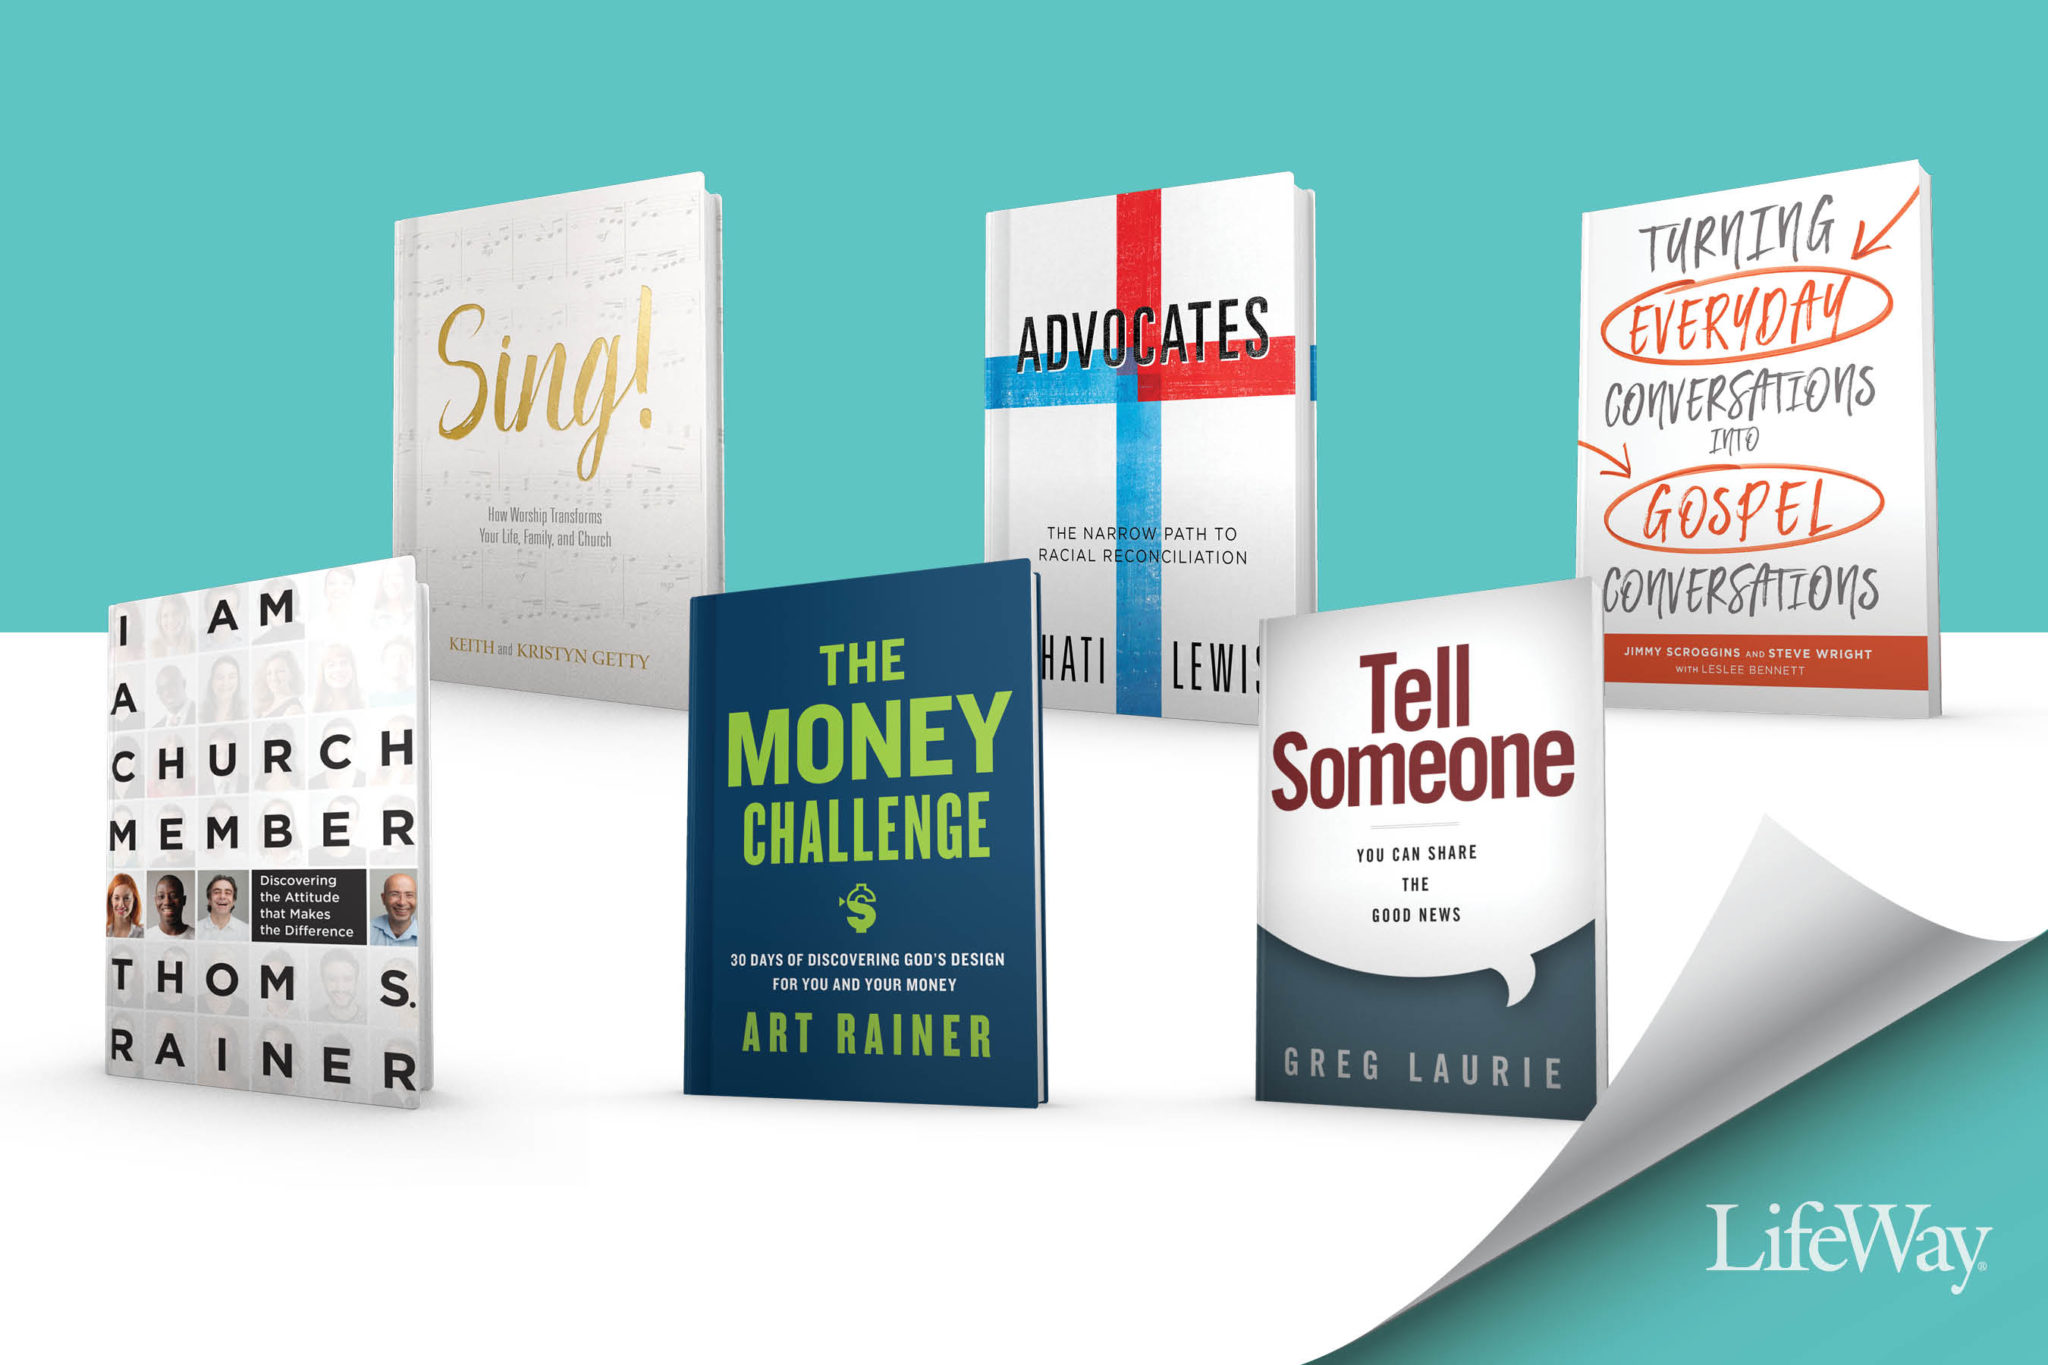 B&H Publishing offers low-cost books with free discussion guides to churches